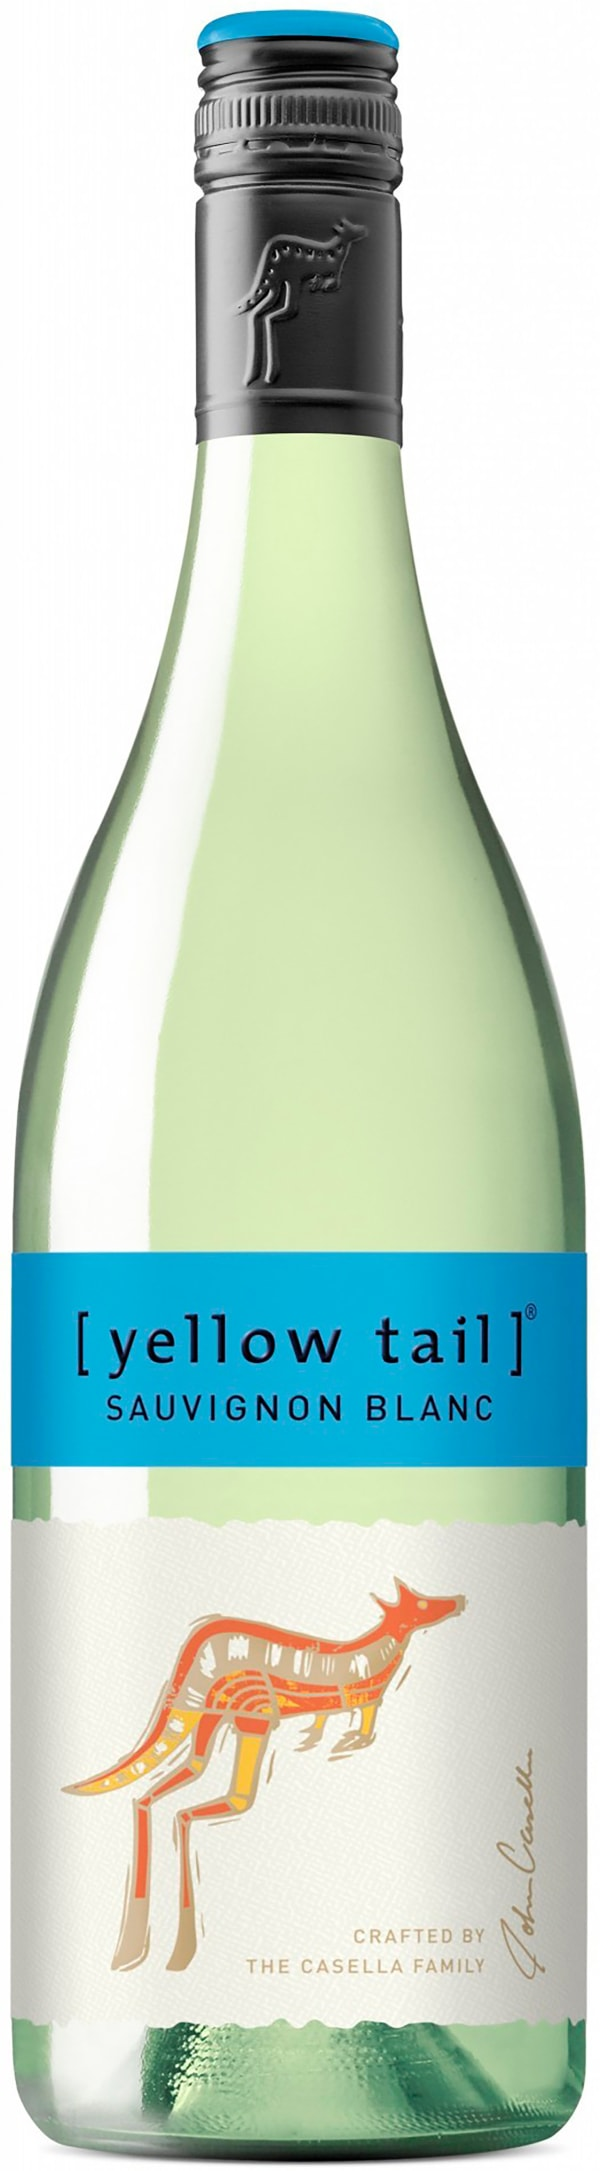 Yellow Tail Sauvignon Blanc 2017